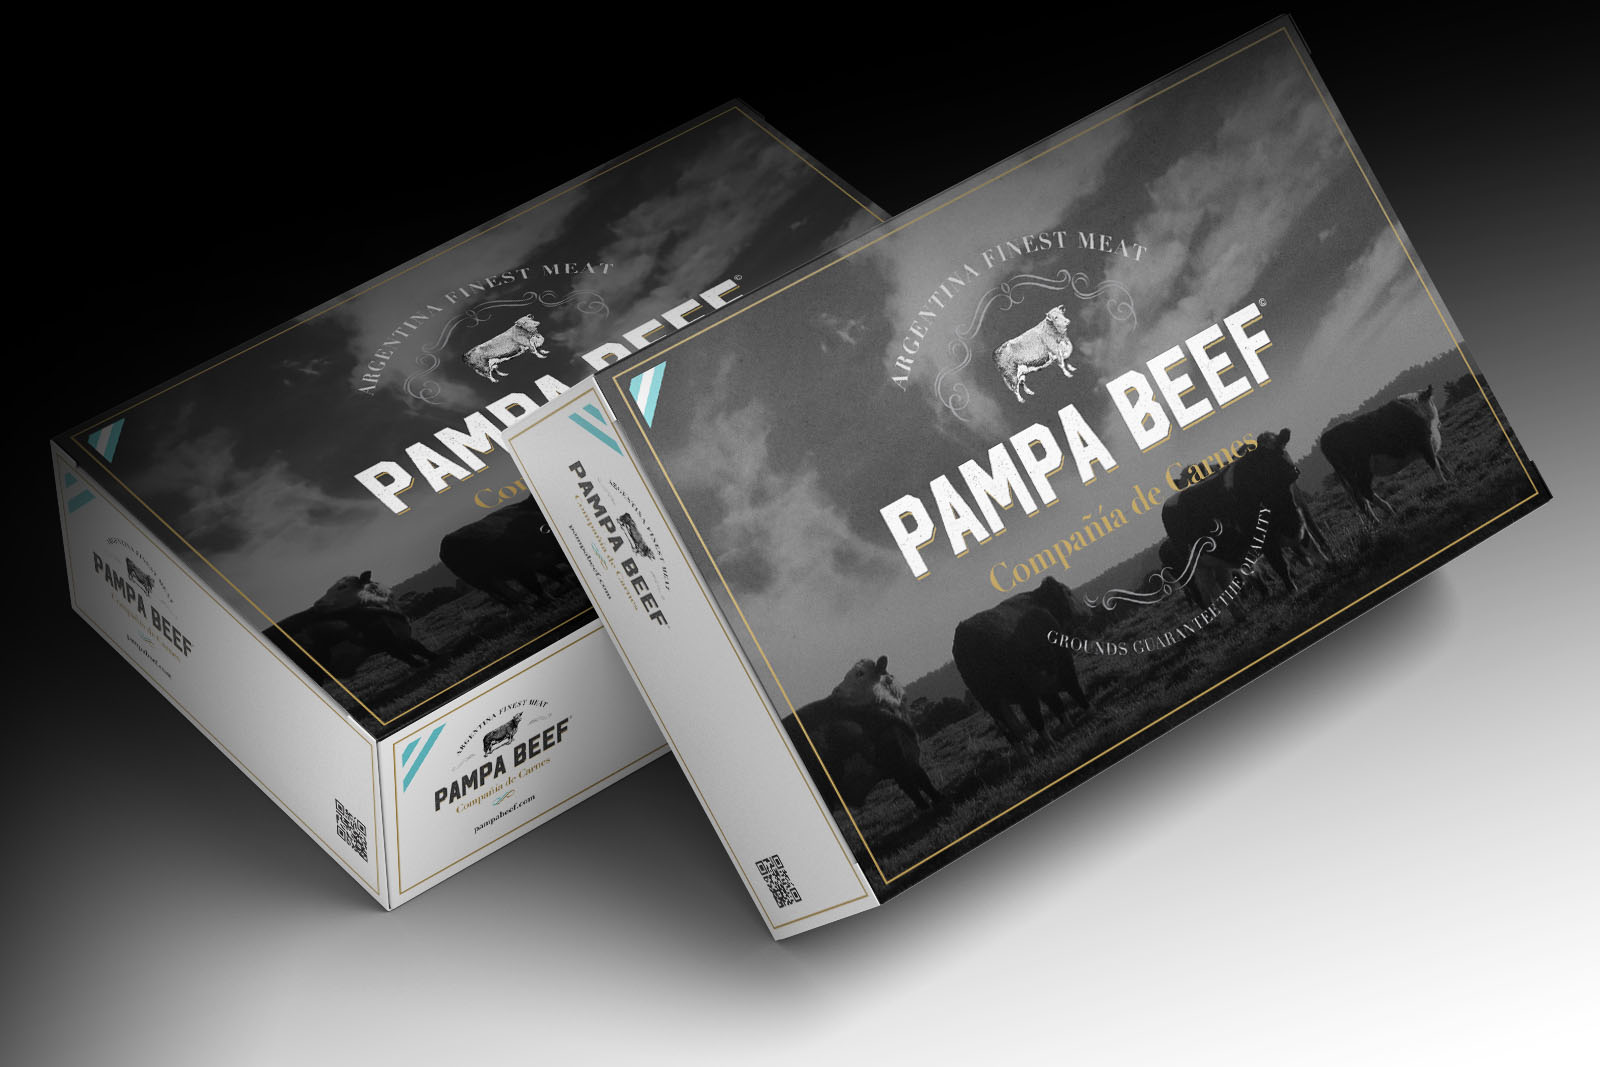 Pampa Beef Compañia de Carnes Products